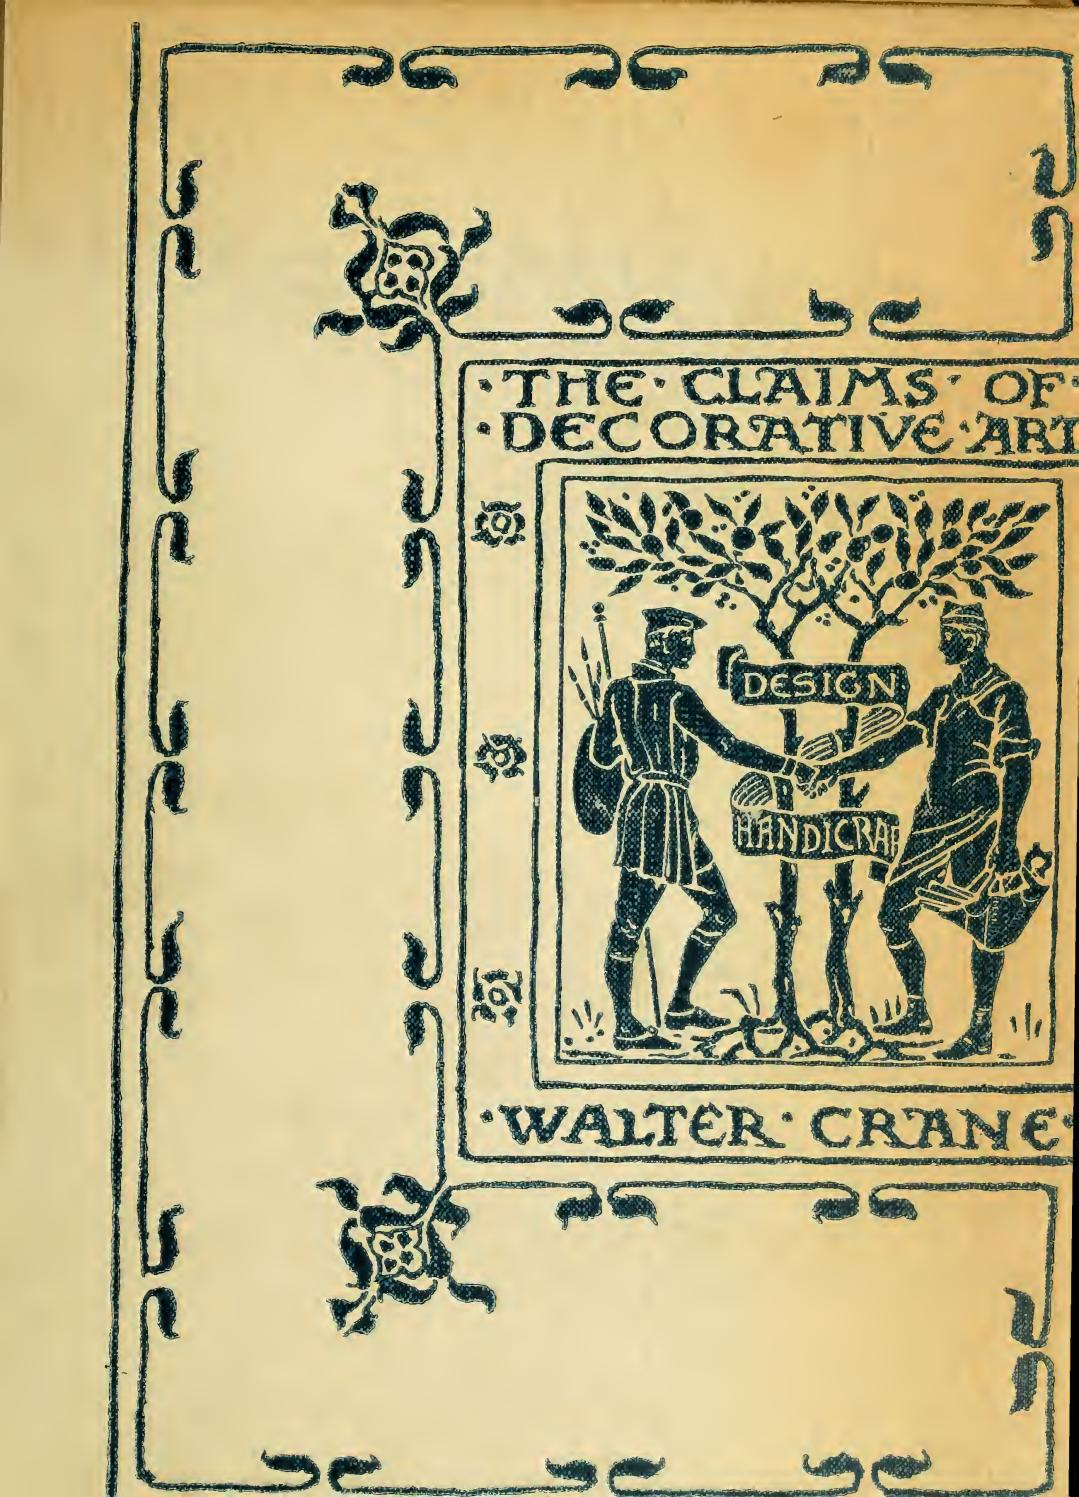 The Claim of Decorative Art by Walter Crane 1892 by Asanti